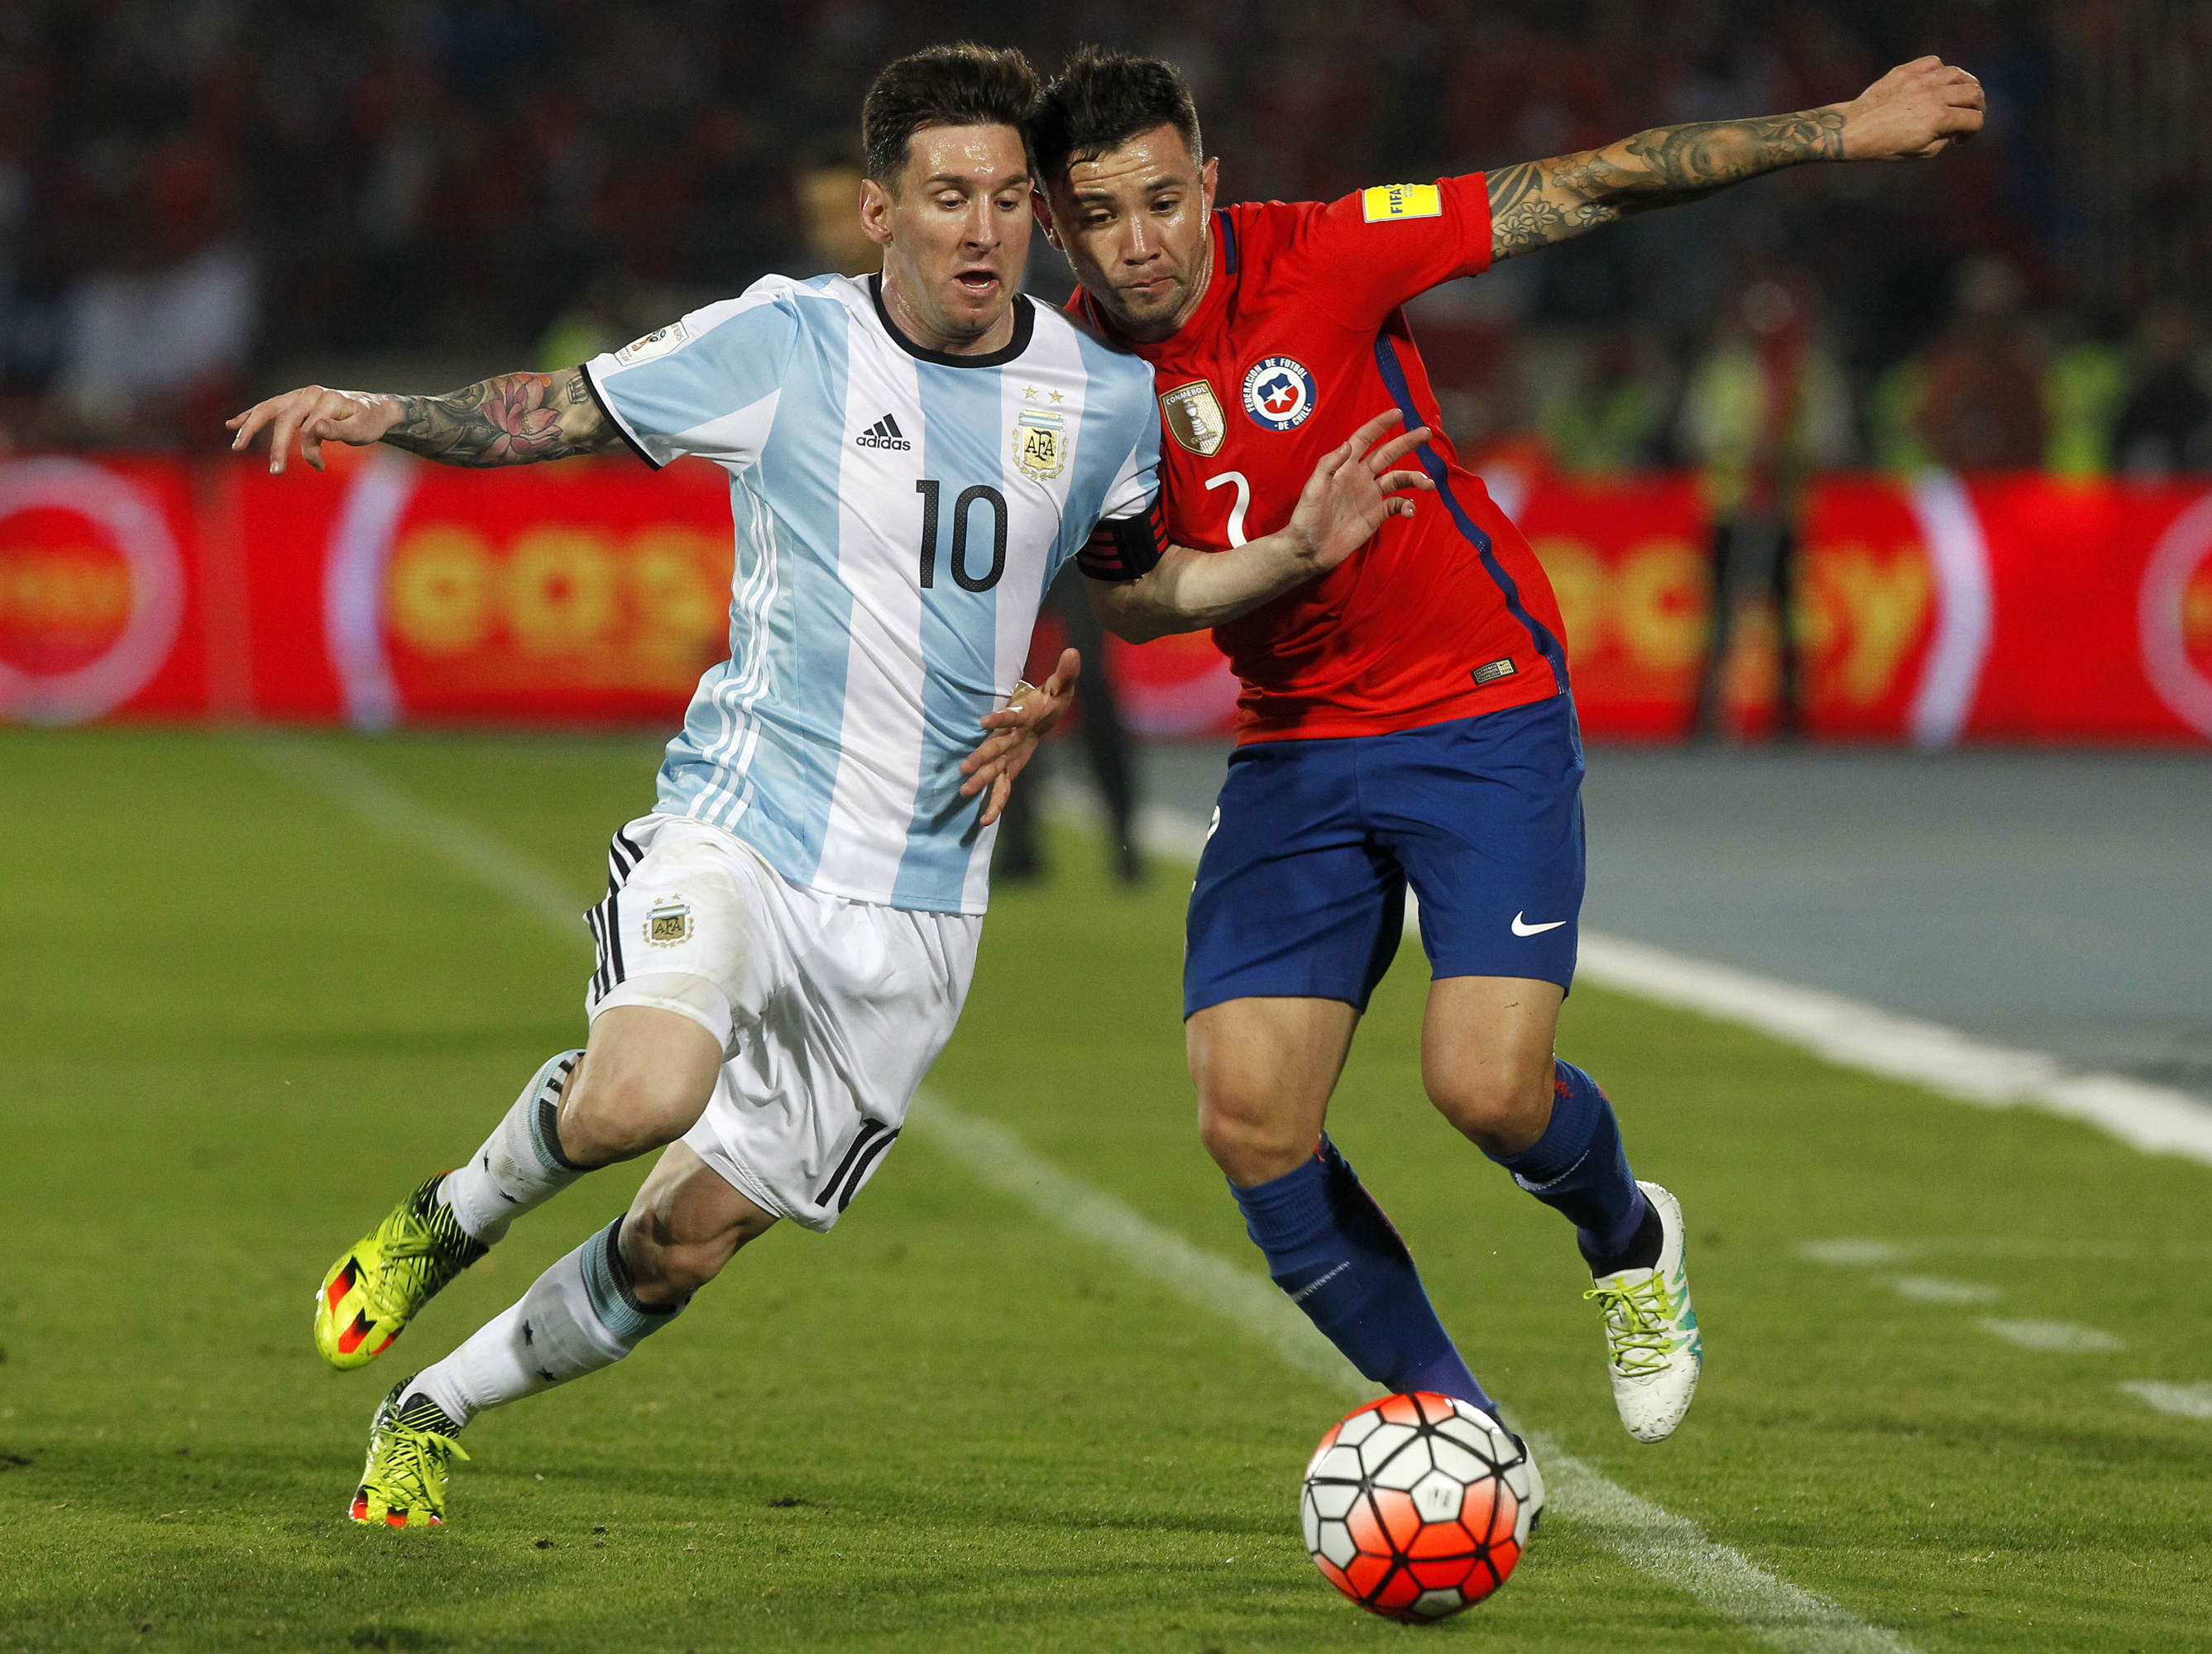 Argentina Vs Chile Live Stream How To